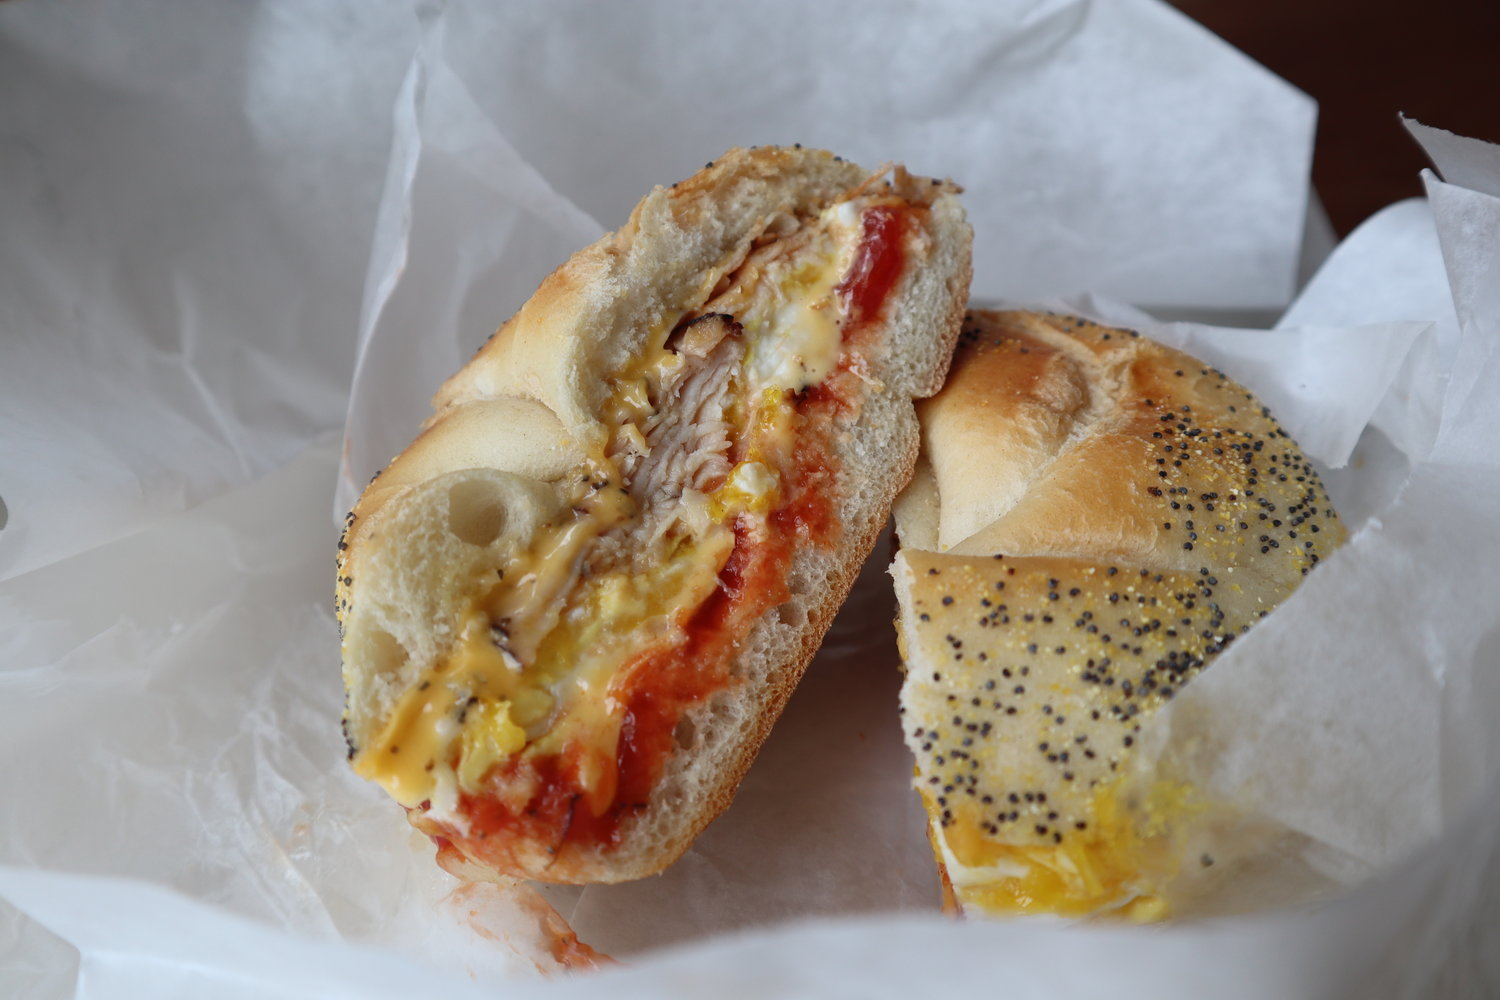 """Every deli has to make a good egg and cheese,"" said Ward's customer Mark Valencia."